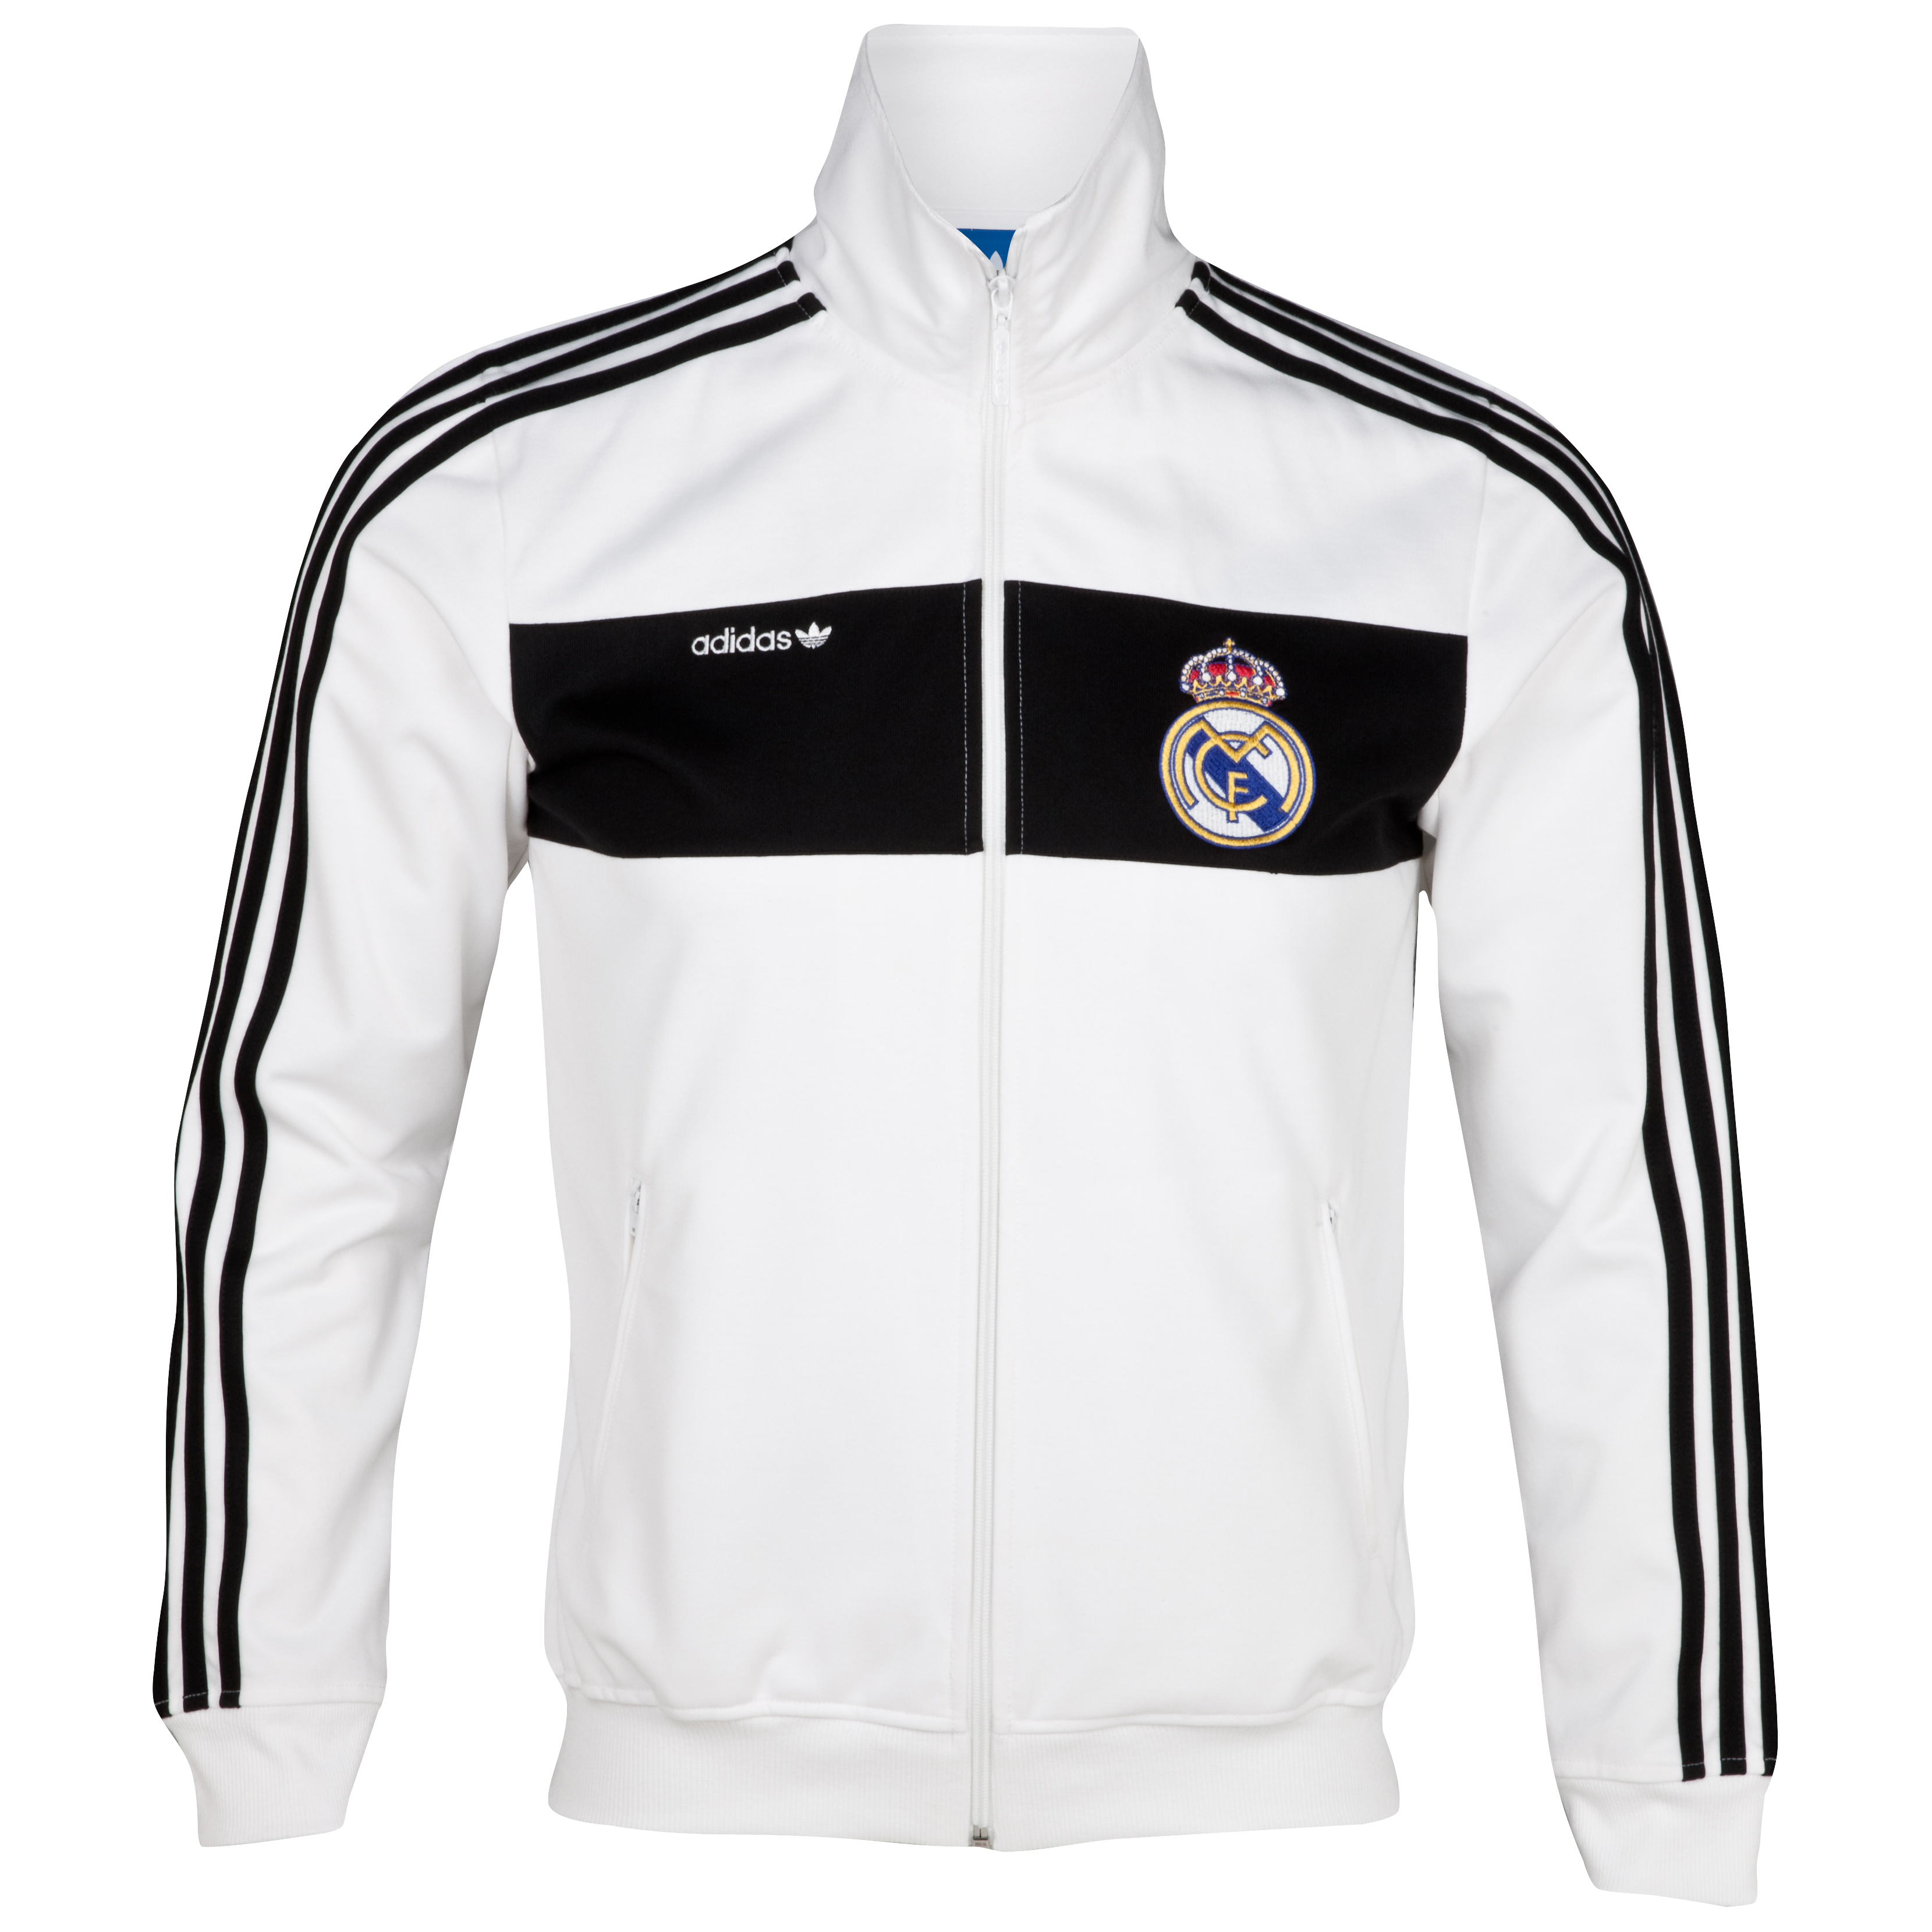 Chaqueta chndal Beckenbauer Real Madrid adidas Originals - Blanco/negro